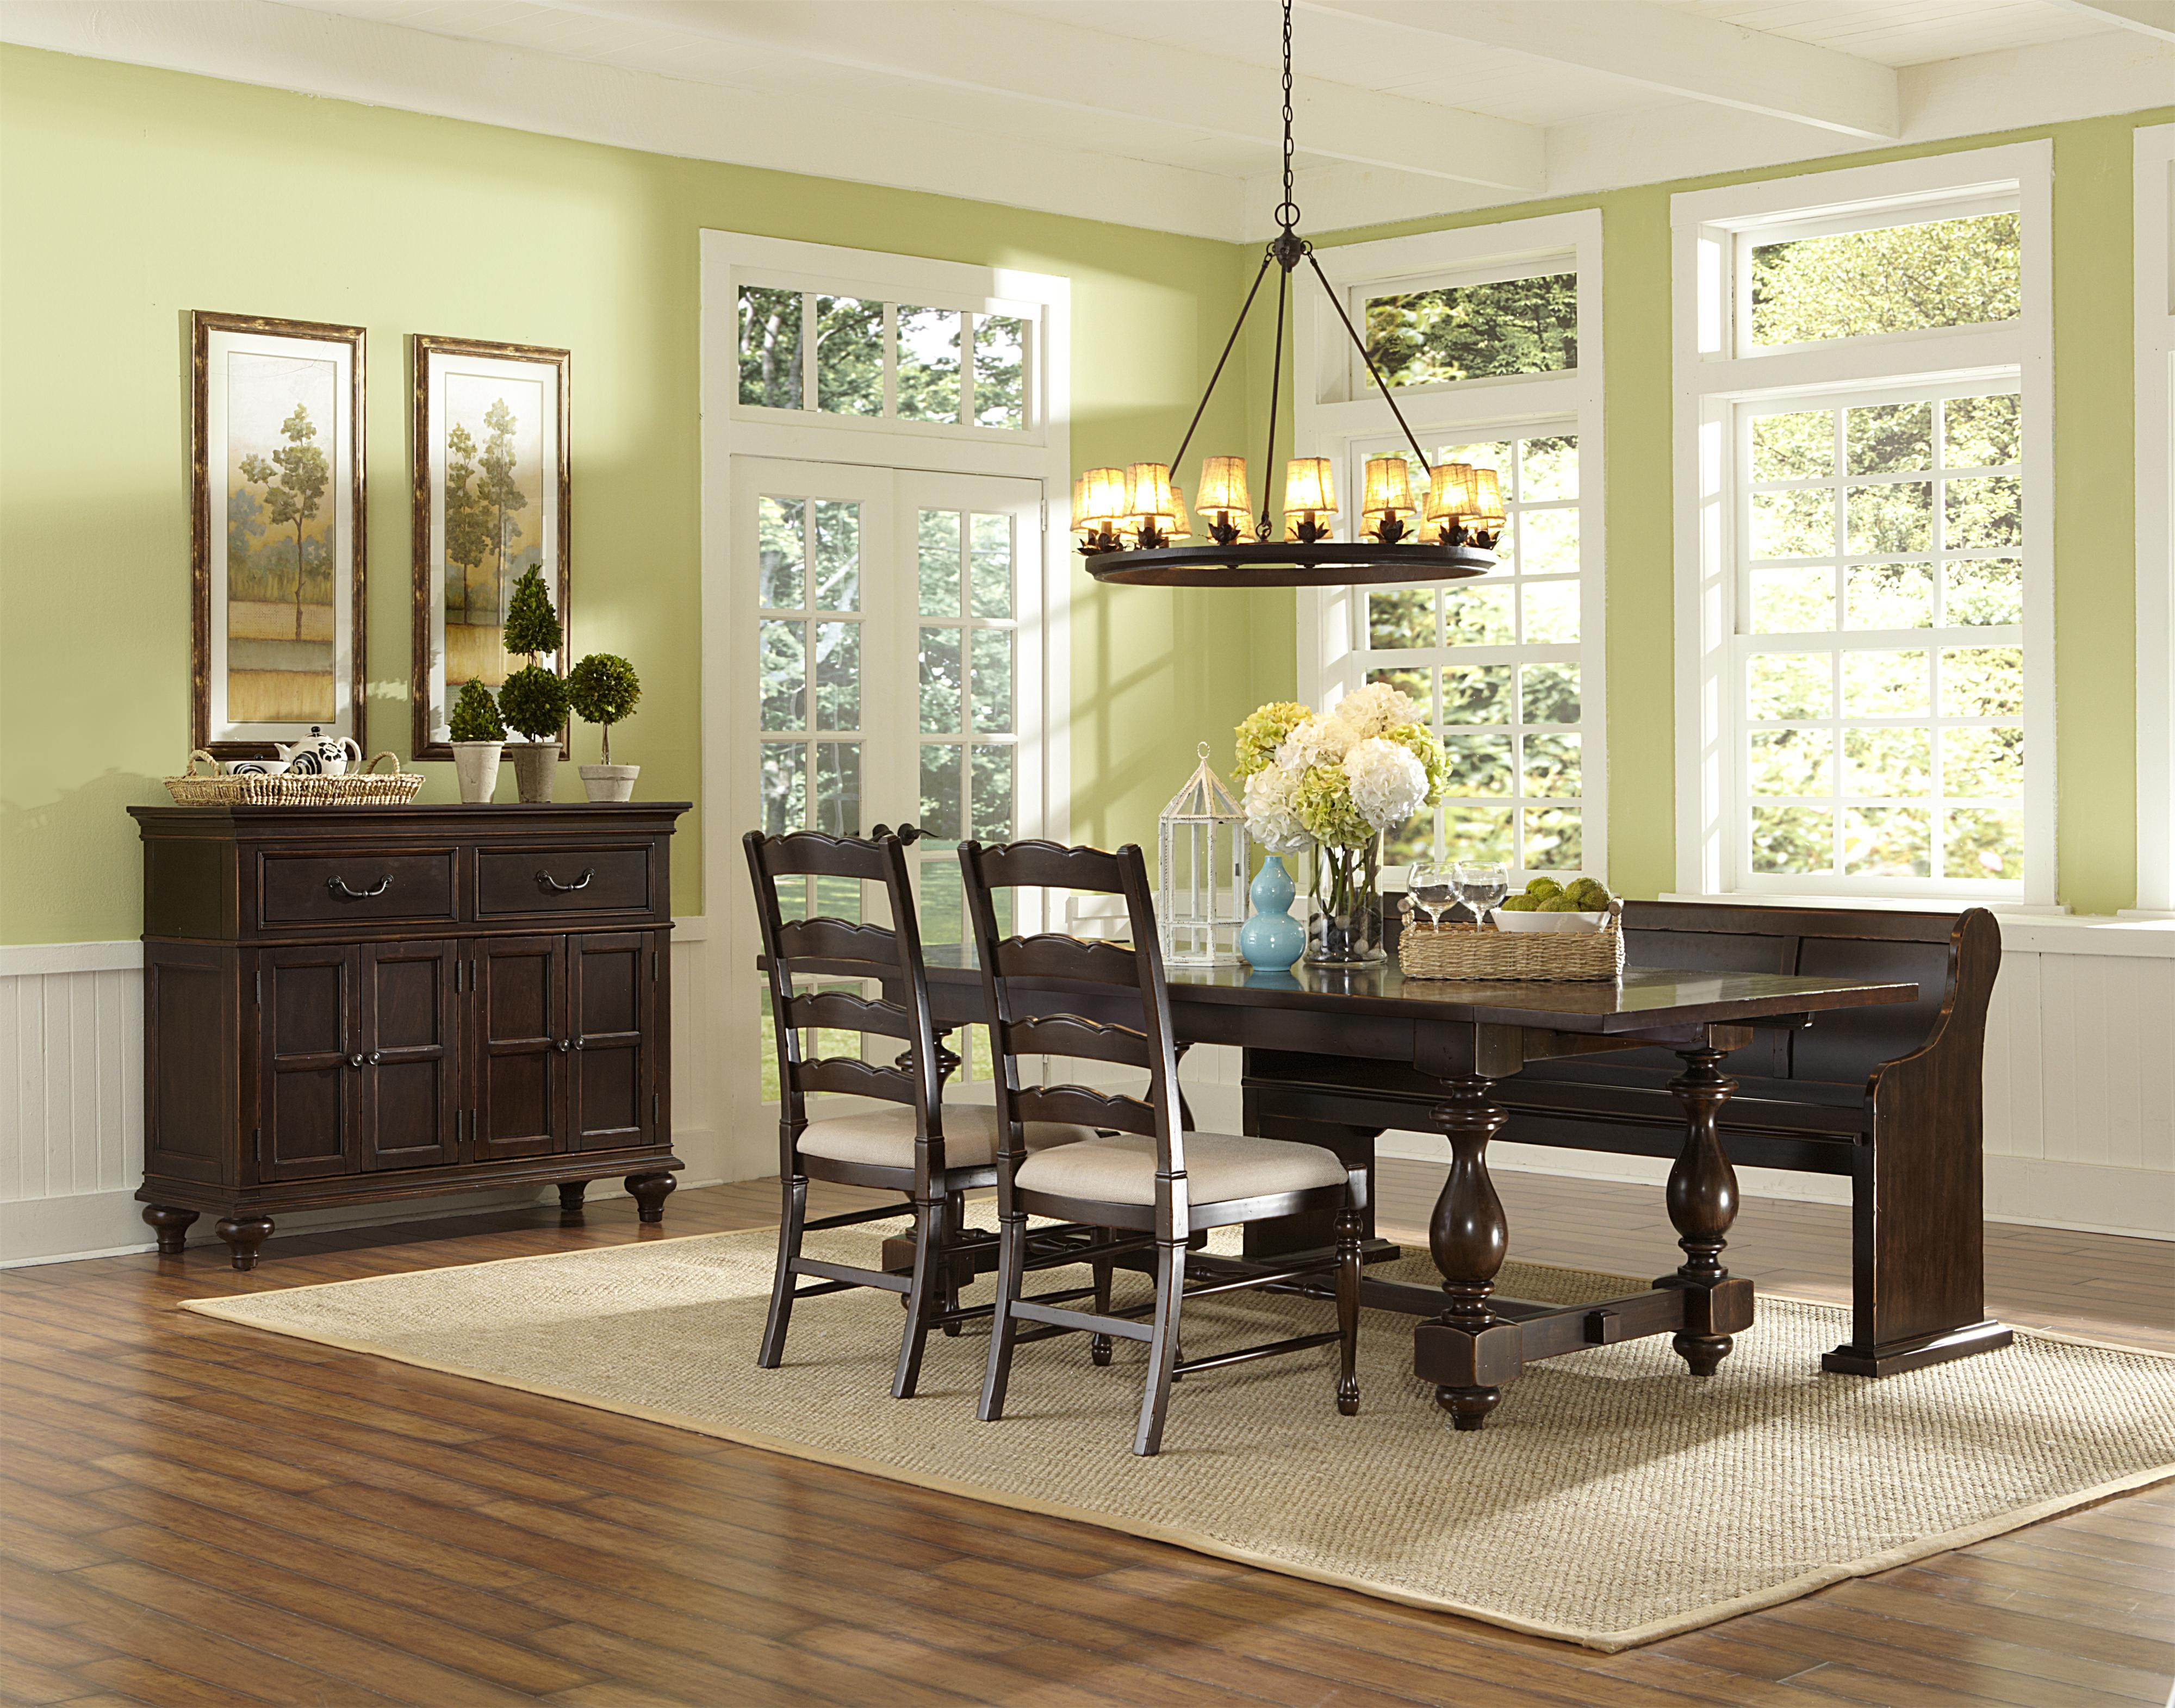 Magnussen Home  Loren Casual Dining Room Group - Item Number: D2470 Dining Room Group 6